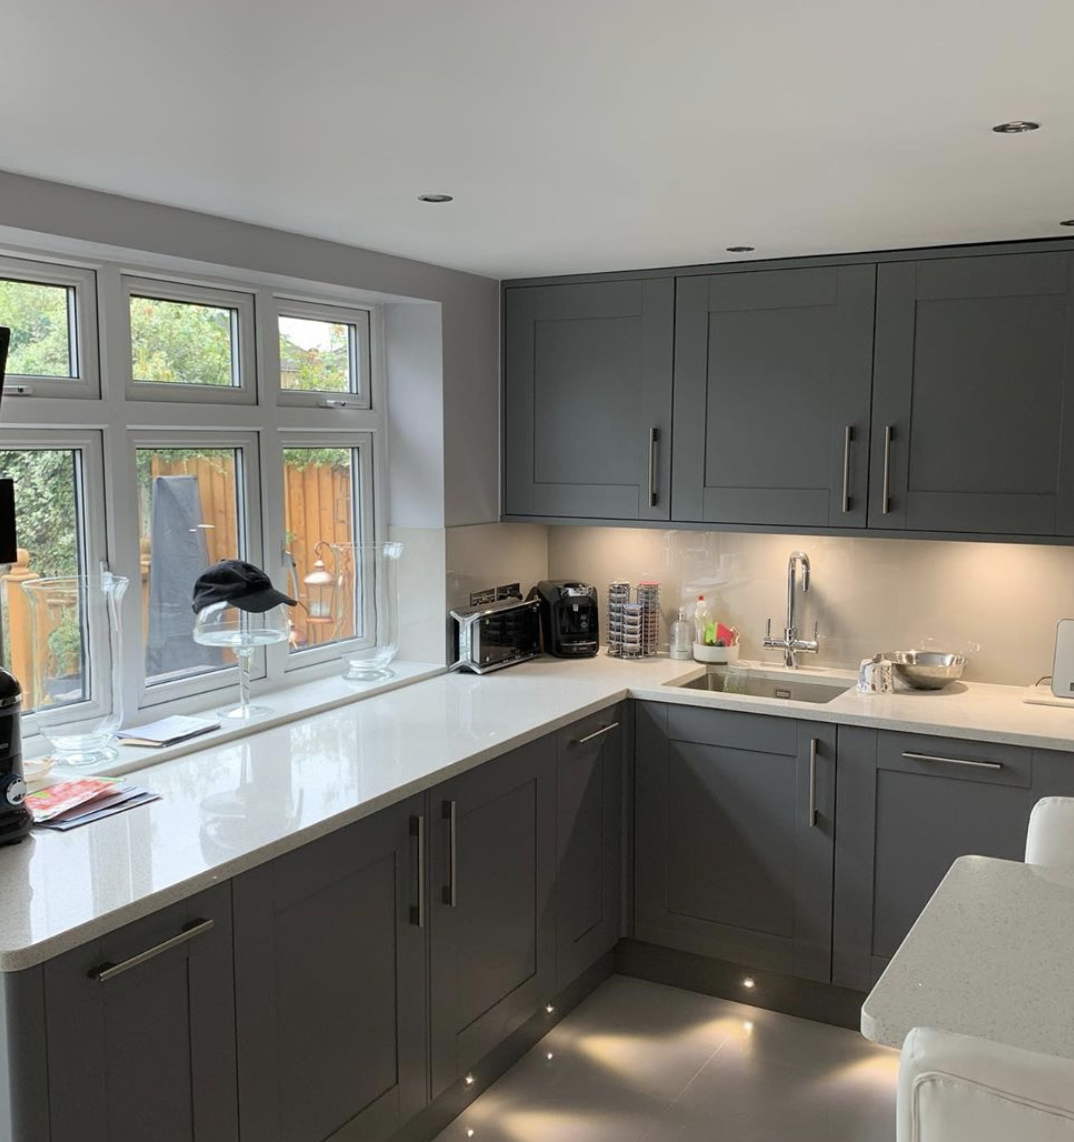 The Soft Appeal Of Grey Can Cool Many Interiors. Yet One